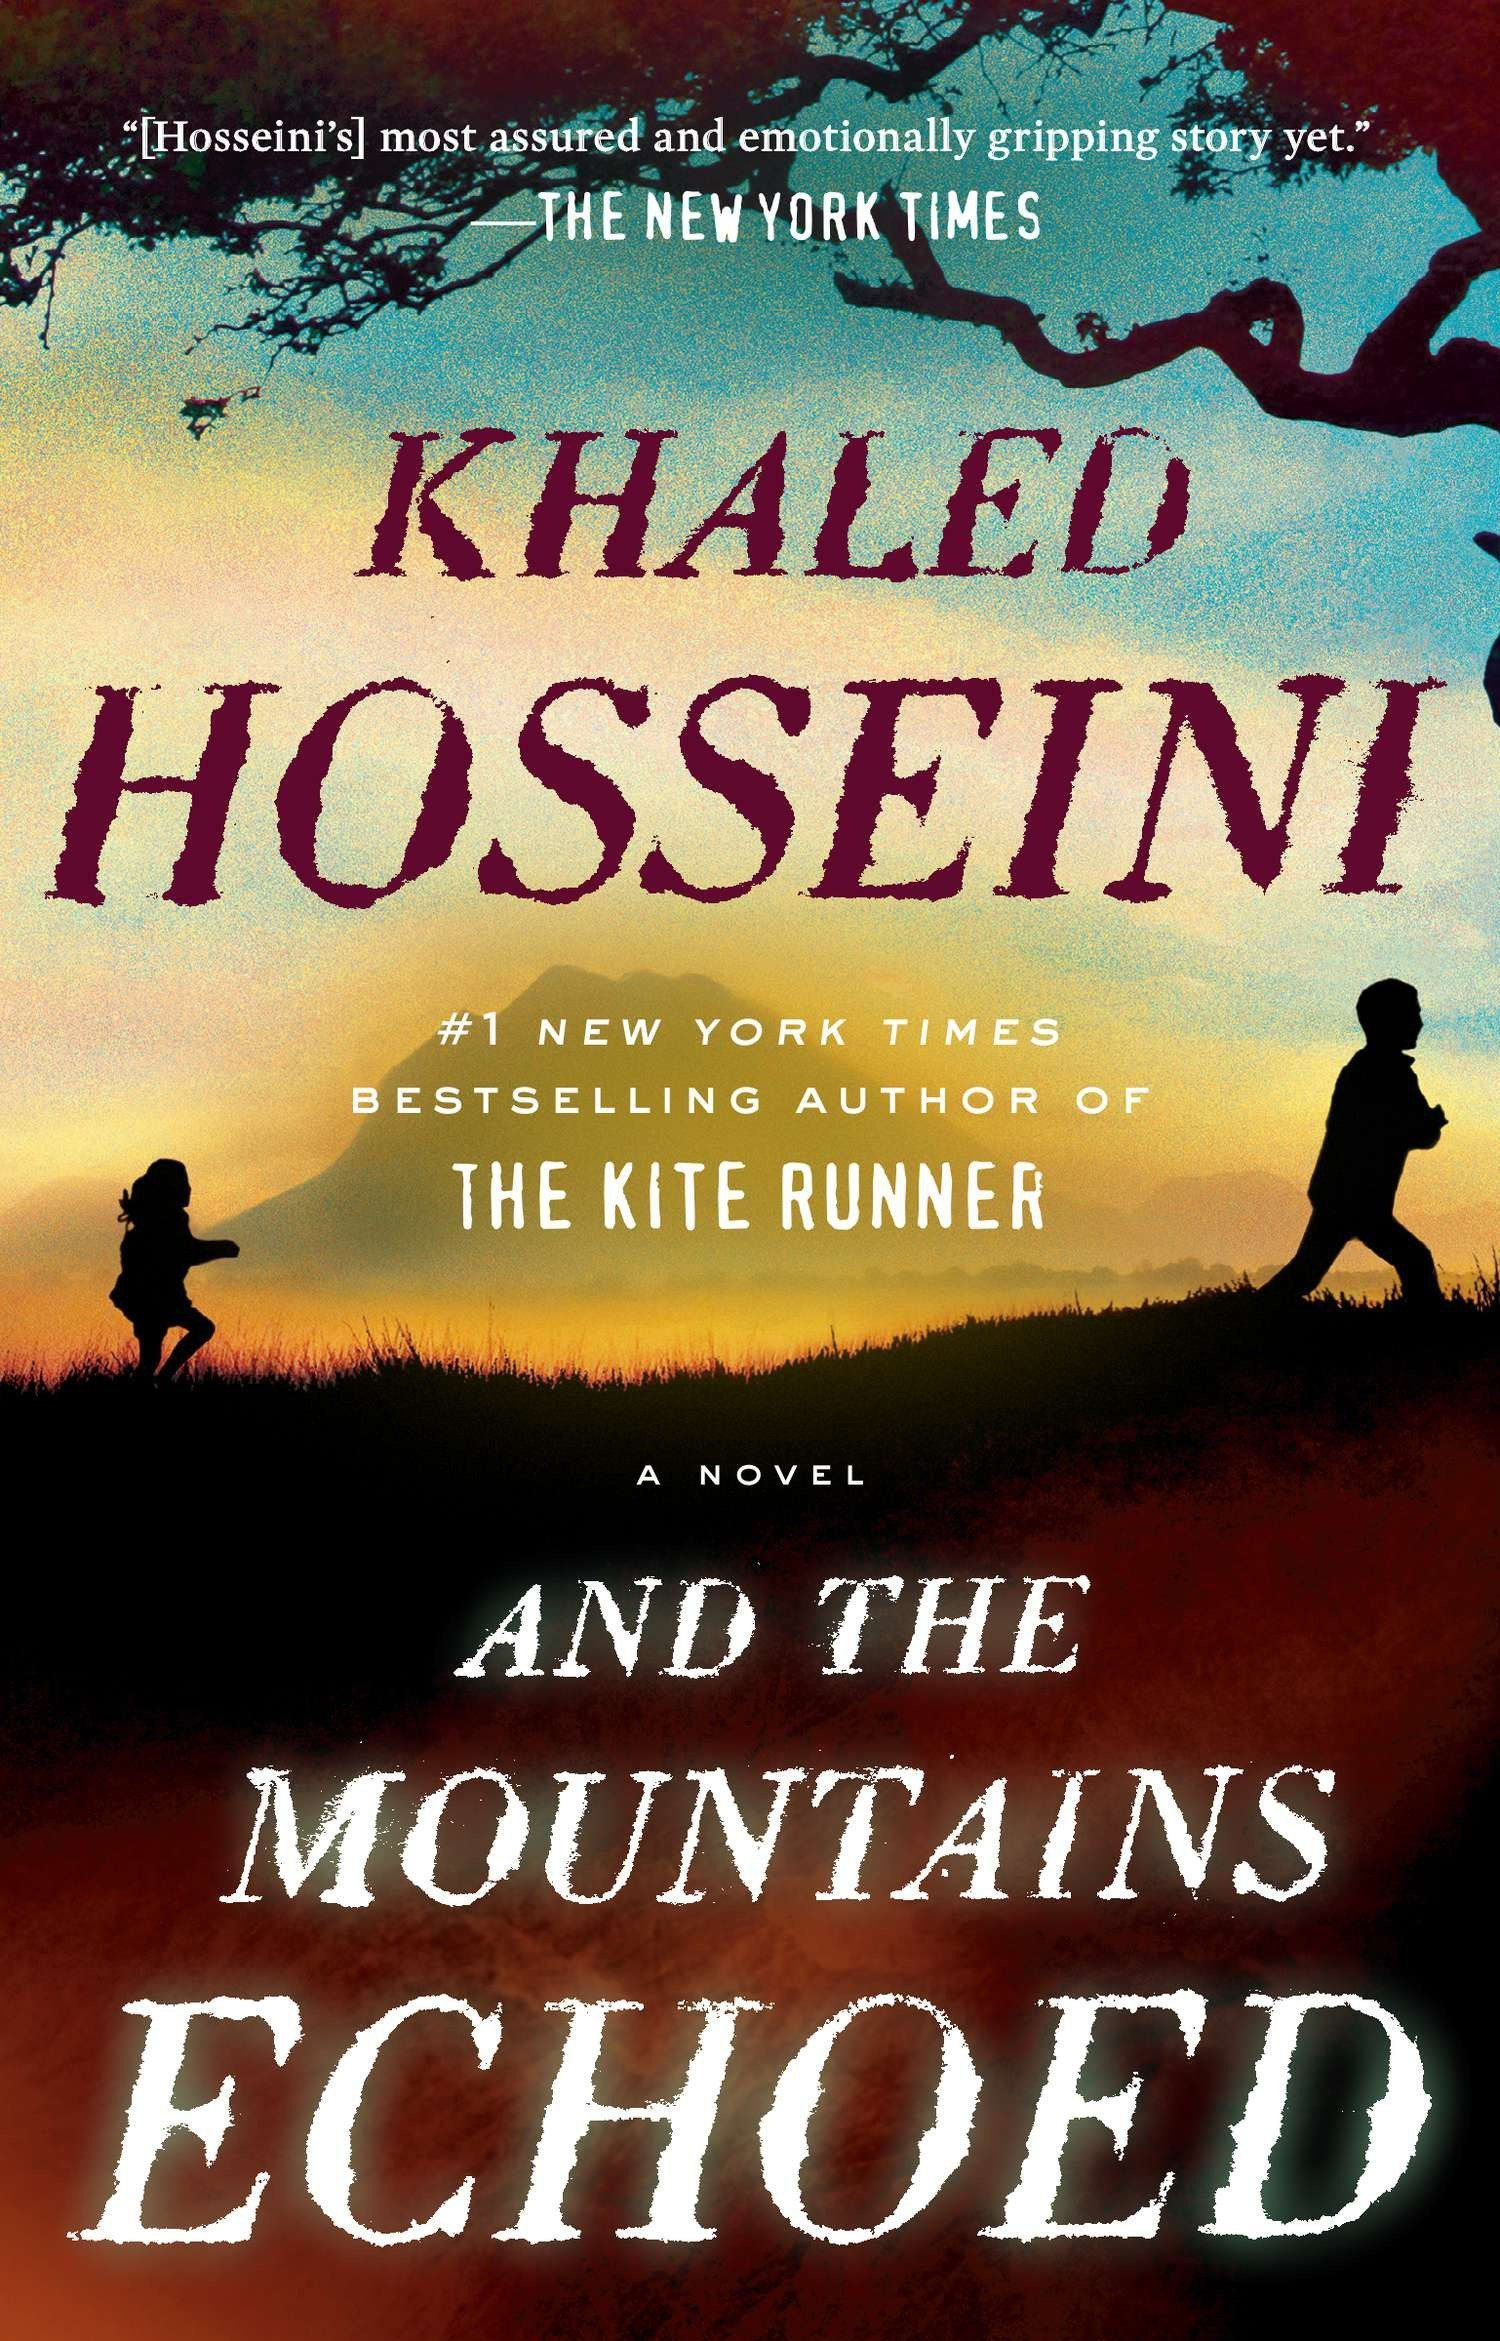 And the Mountains Echoed: Amazon.es: Khaled Hosseini: Libros en idiomas extranjeros